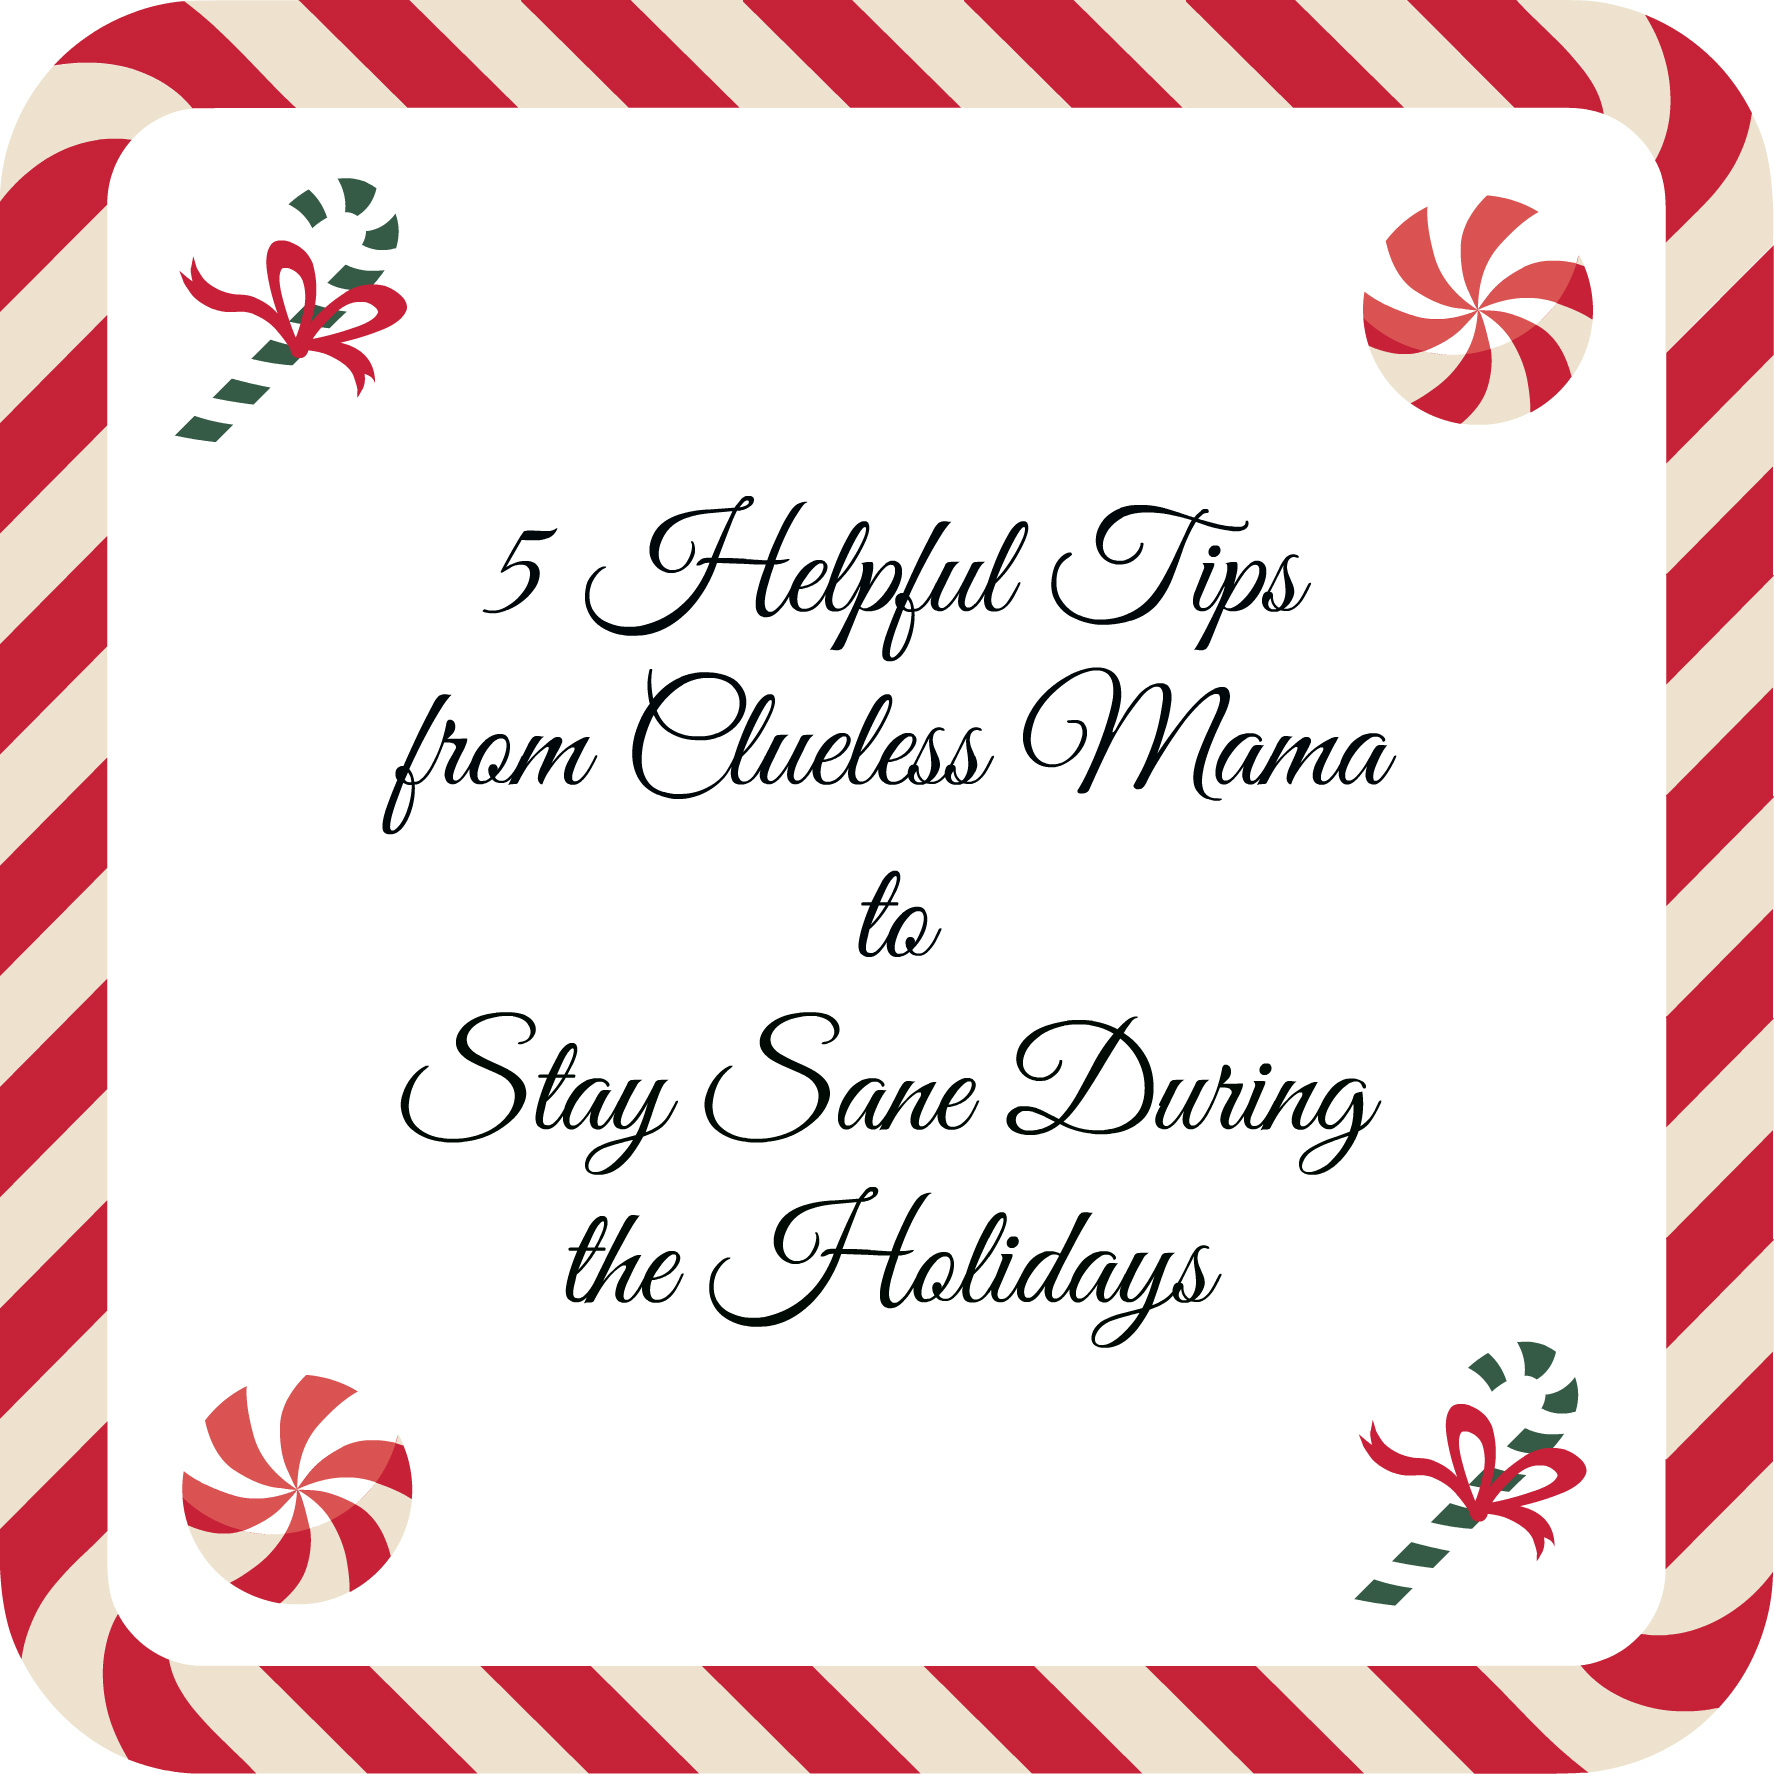 5 Tips for Staying Sane During the Holiday Season #UnstoppableMoms